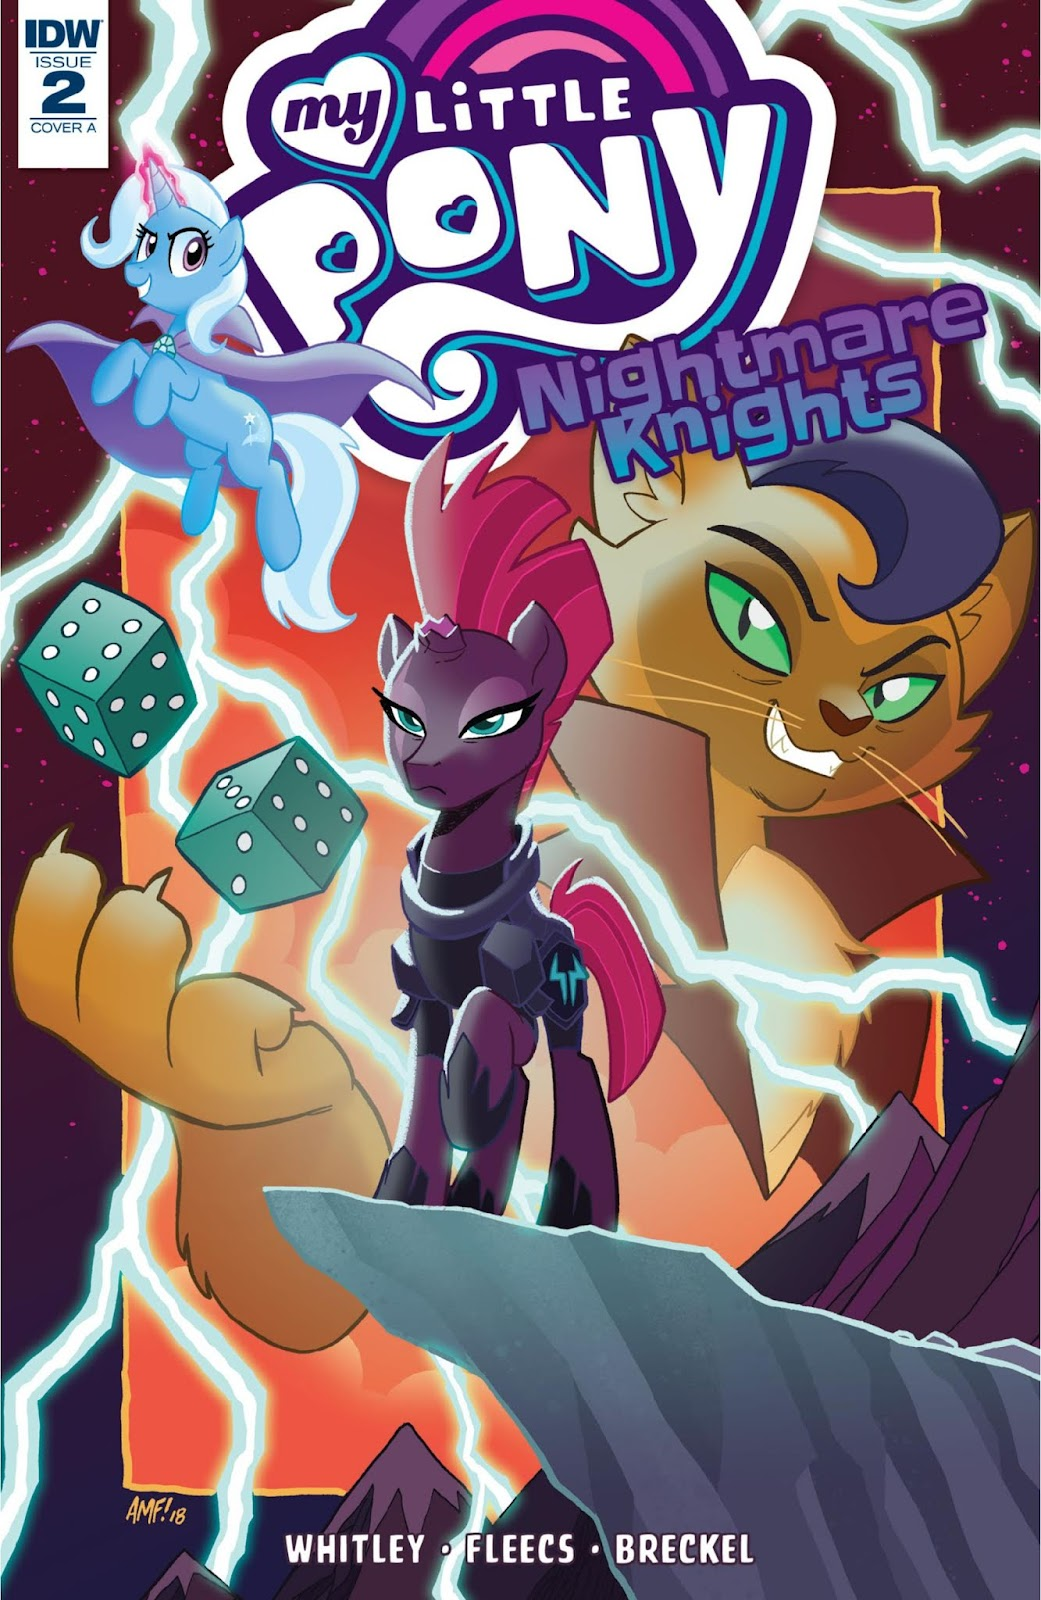 Read online My Little Pony: Nightmare Knights comic -  Issue #2 - 1